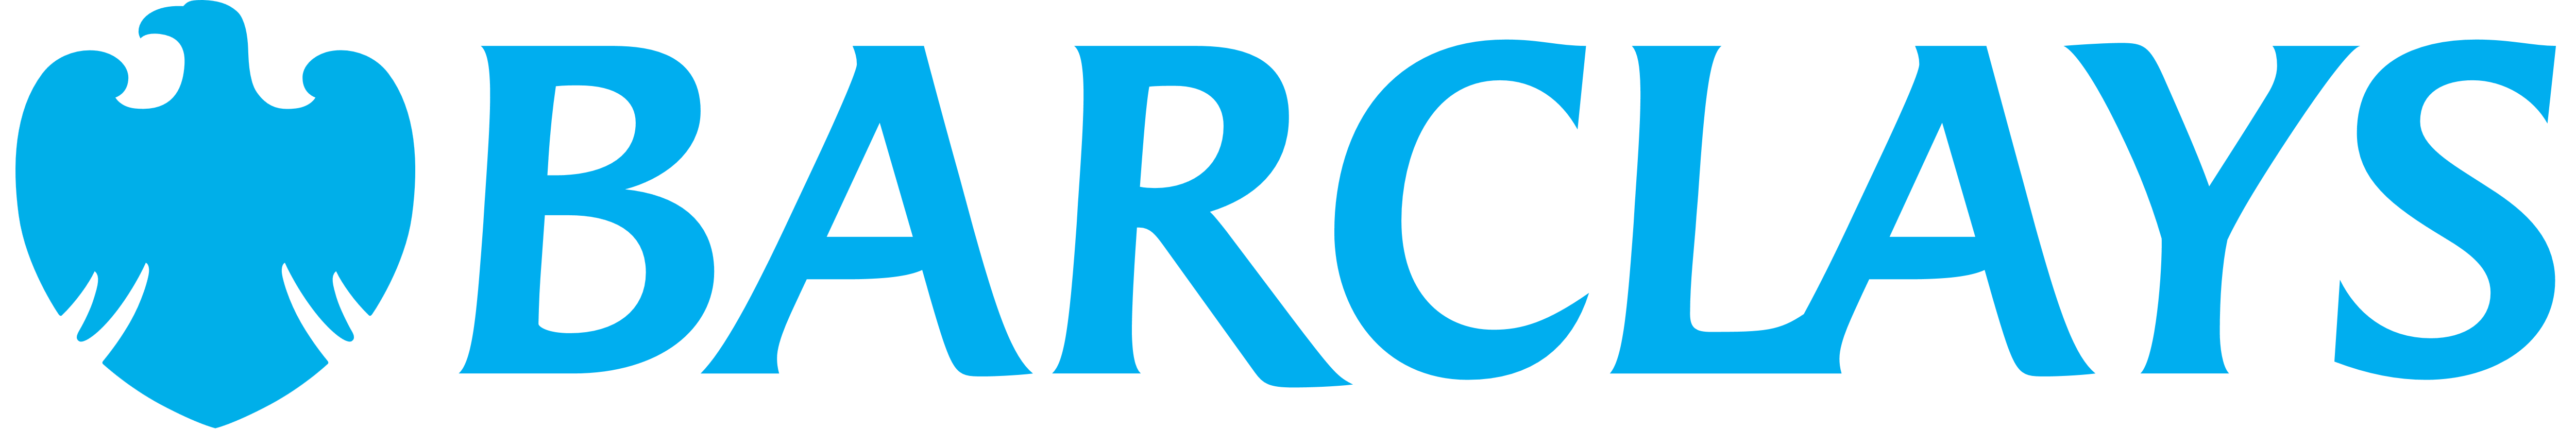 Barclays business bank account logo